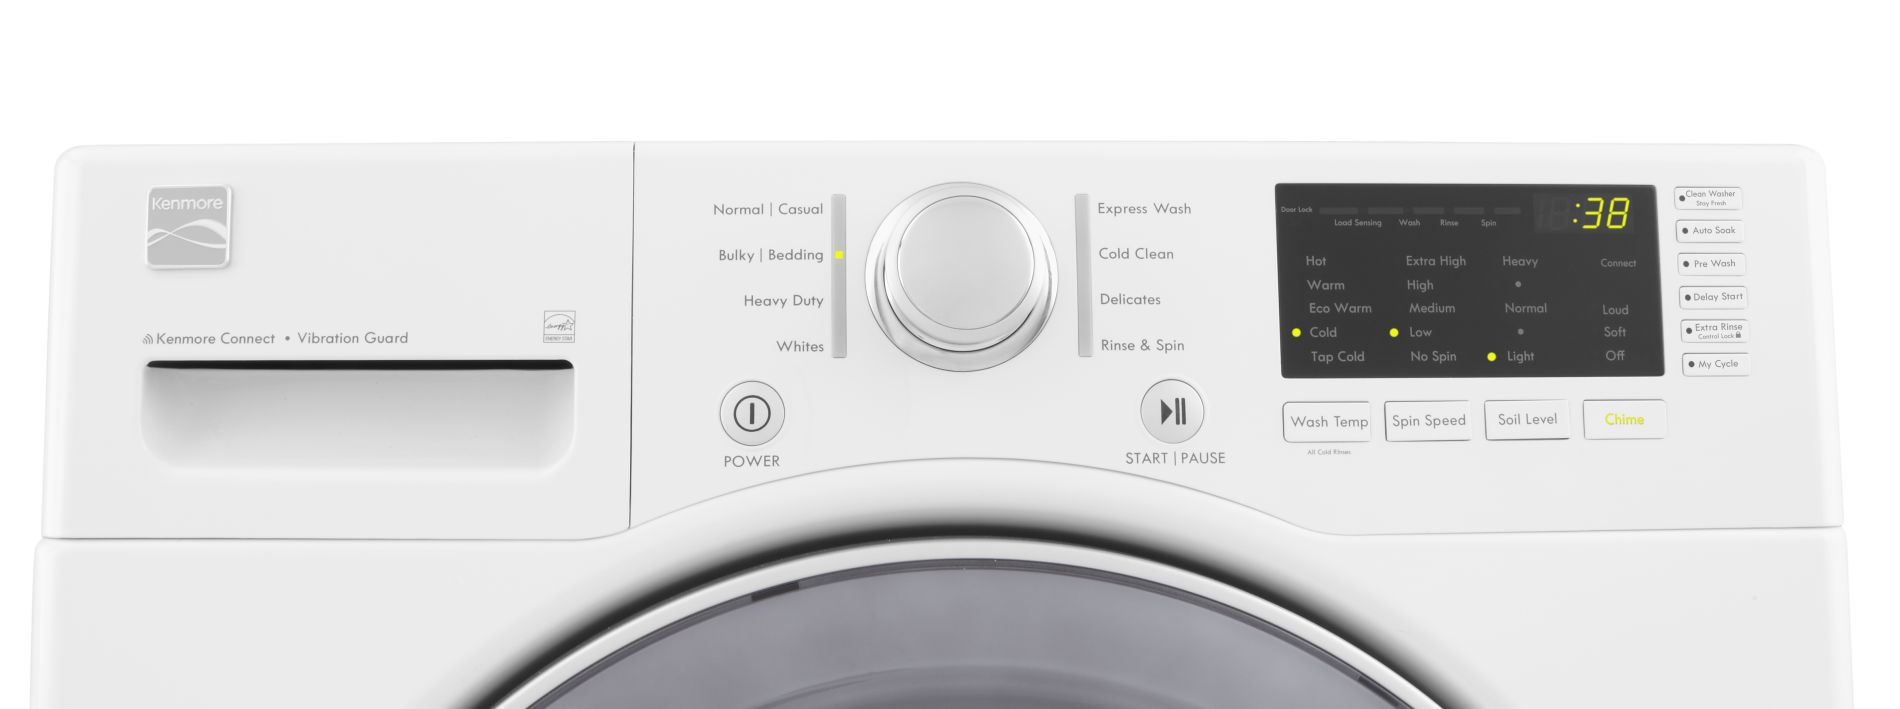 Kenmore 3.7 cu. ft. Front-Load Washing Machine